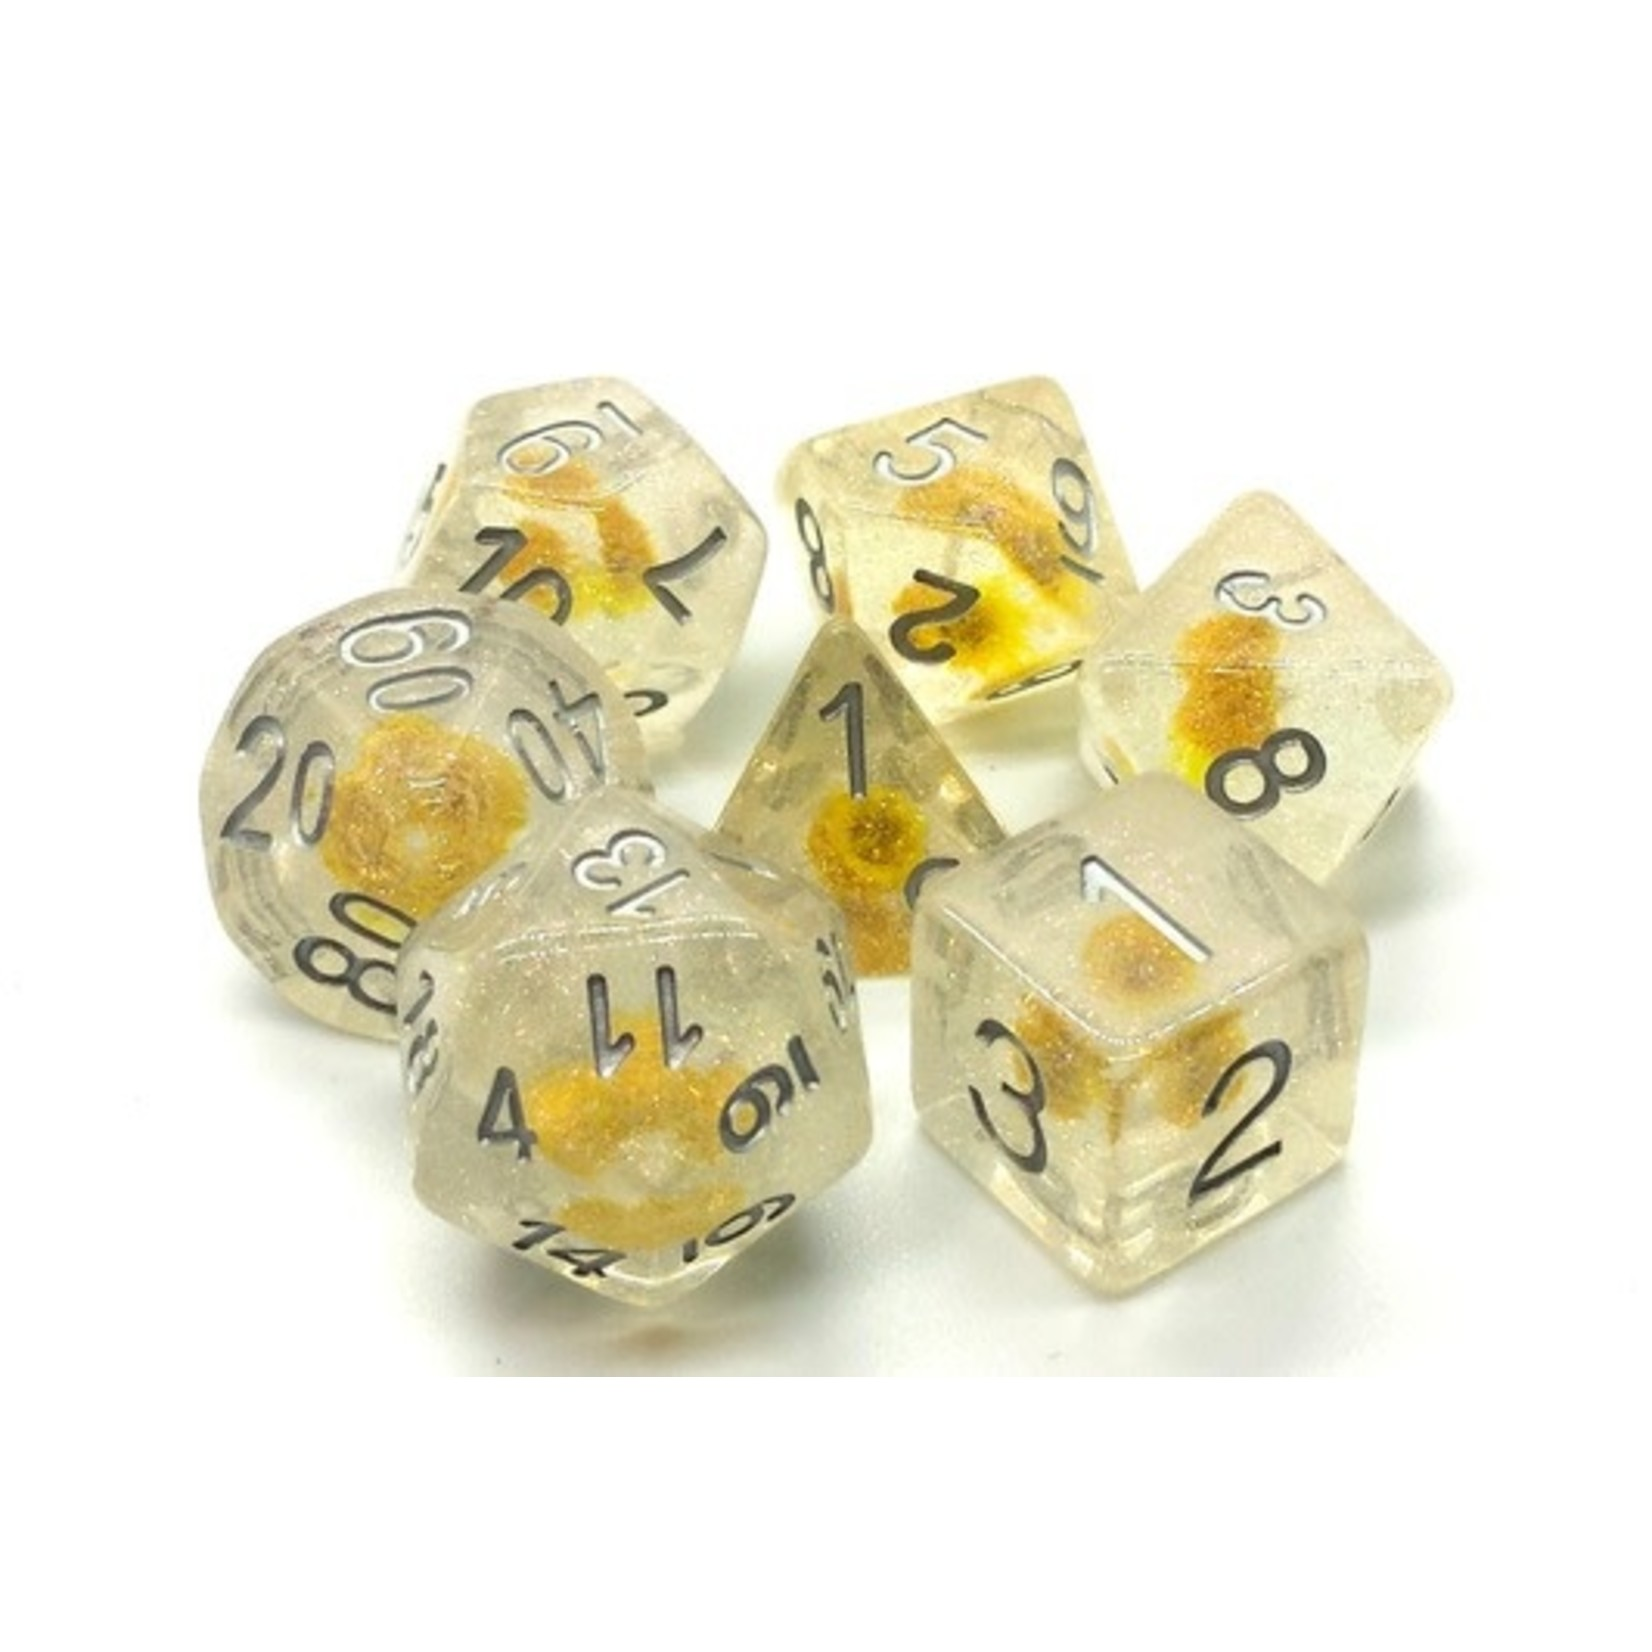 Old School 7 Piece Dice Set: Infused - Iridescent Yellow Flower